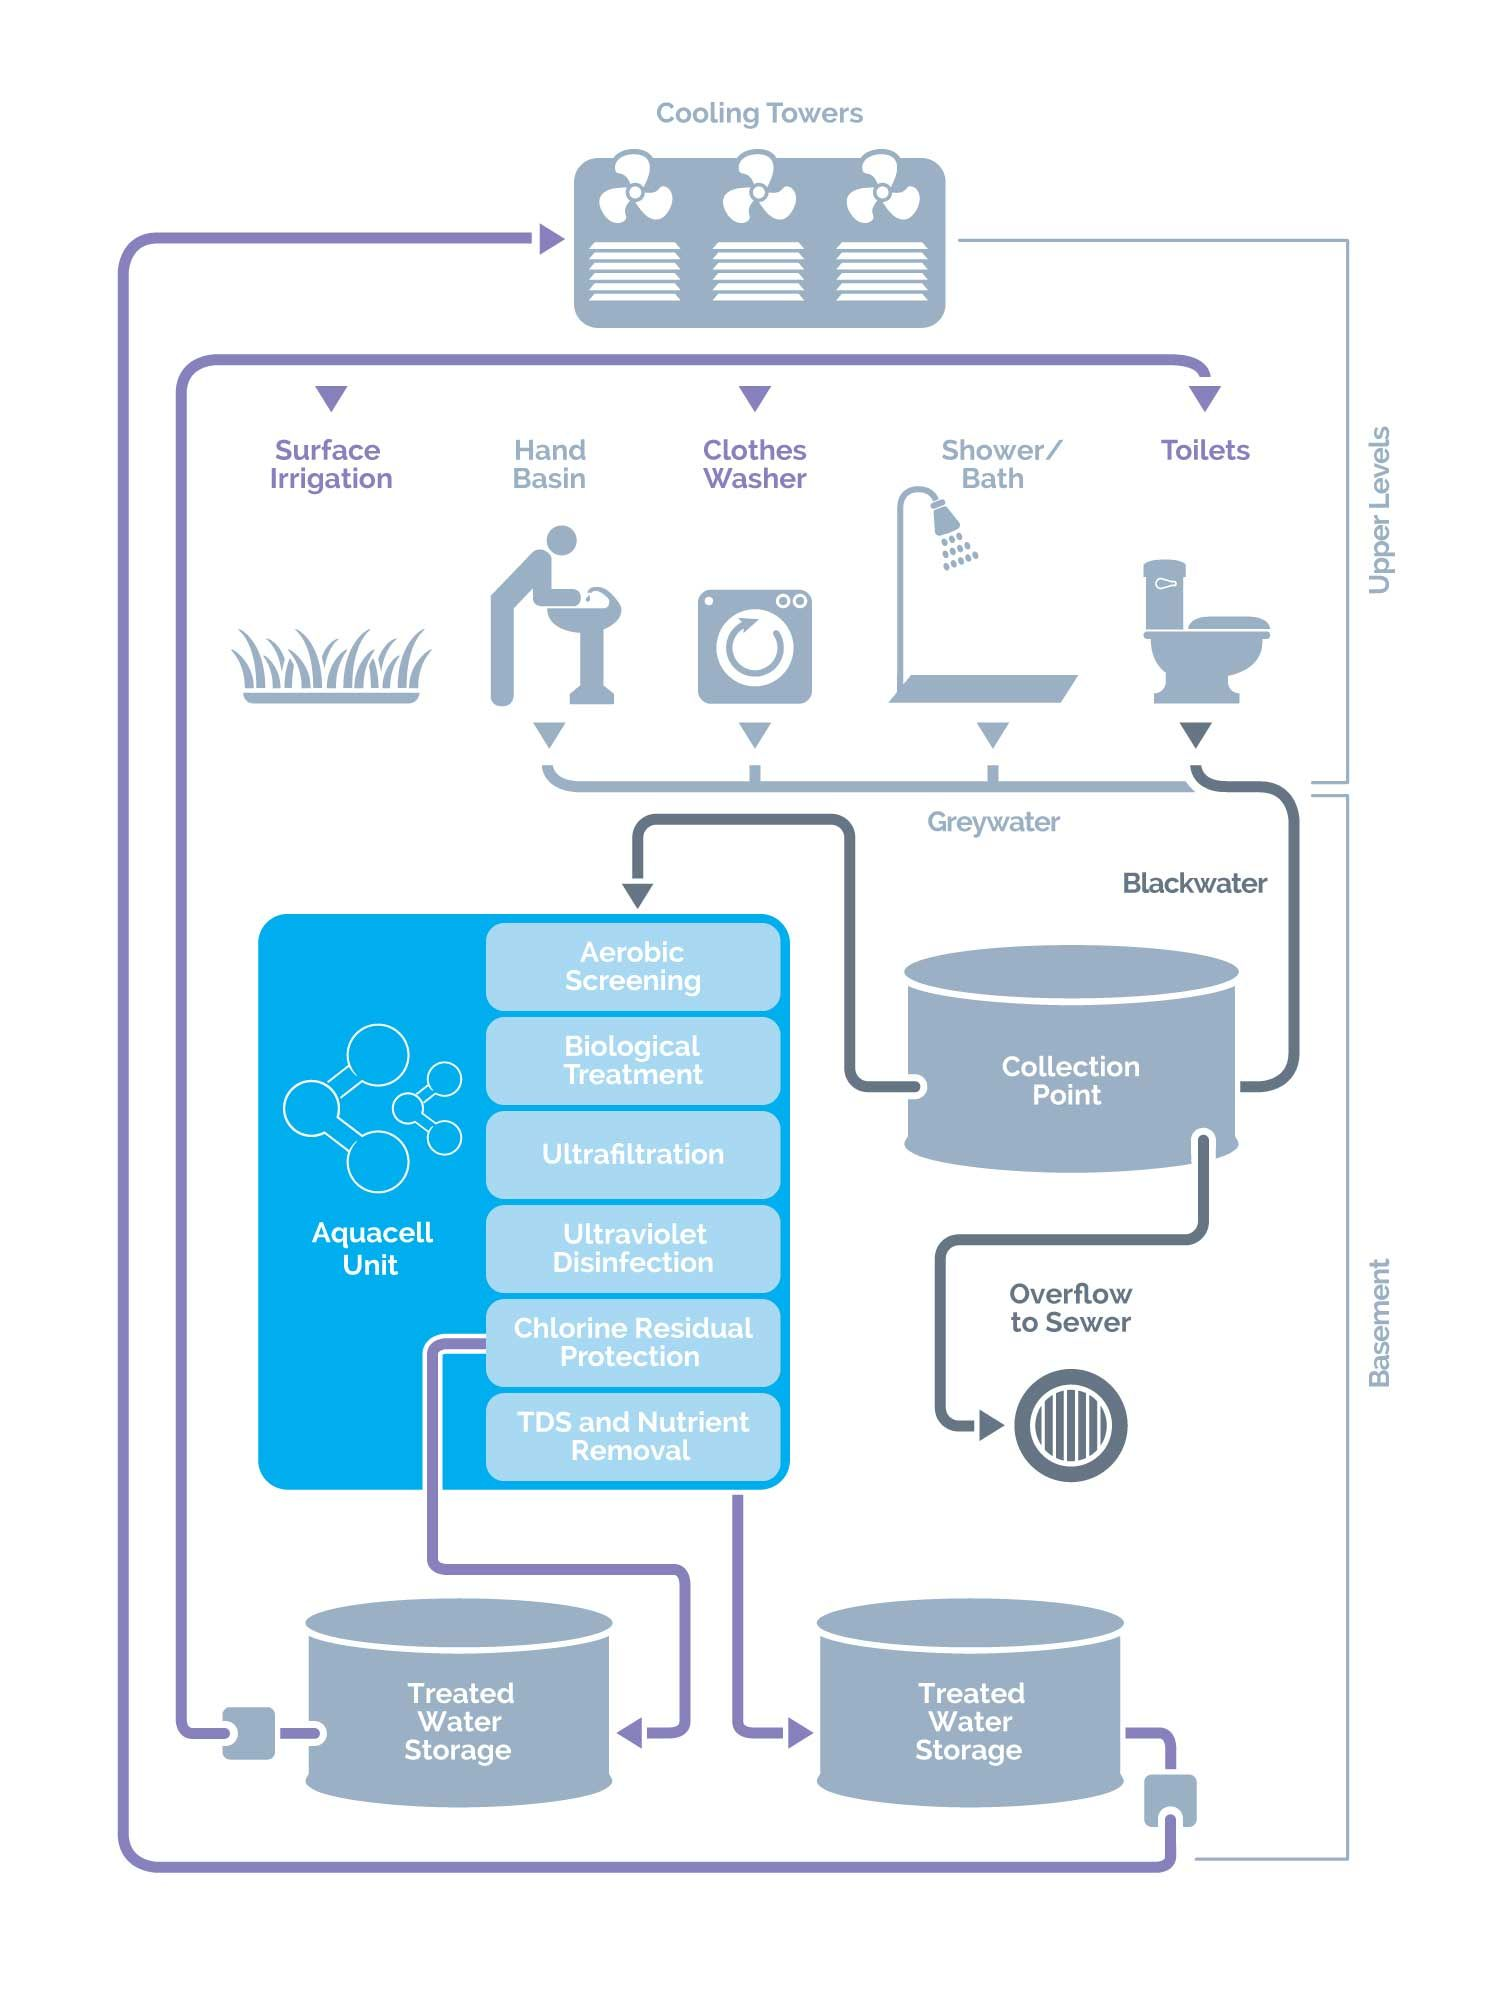 blackwater system blackwater recycling phoenix process equipment company full service on this website process flow diagram water purification  [ 1500 x 2000 Pixel ]